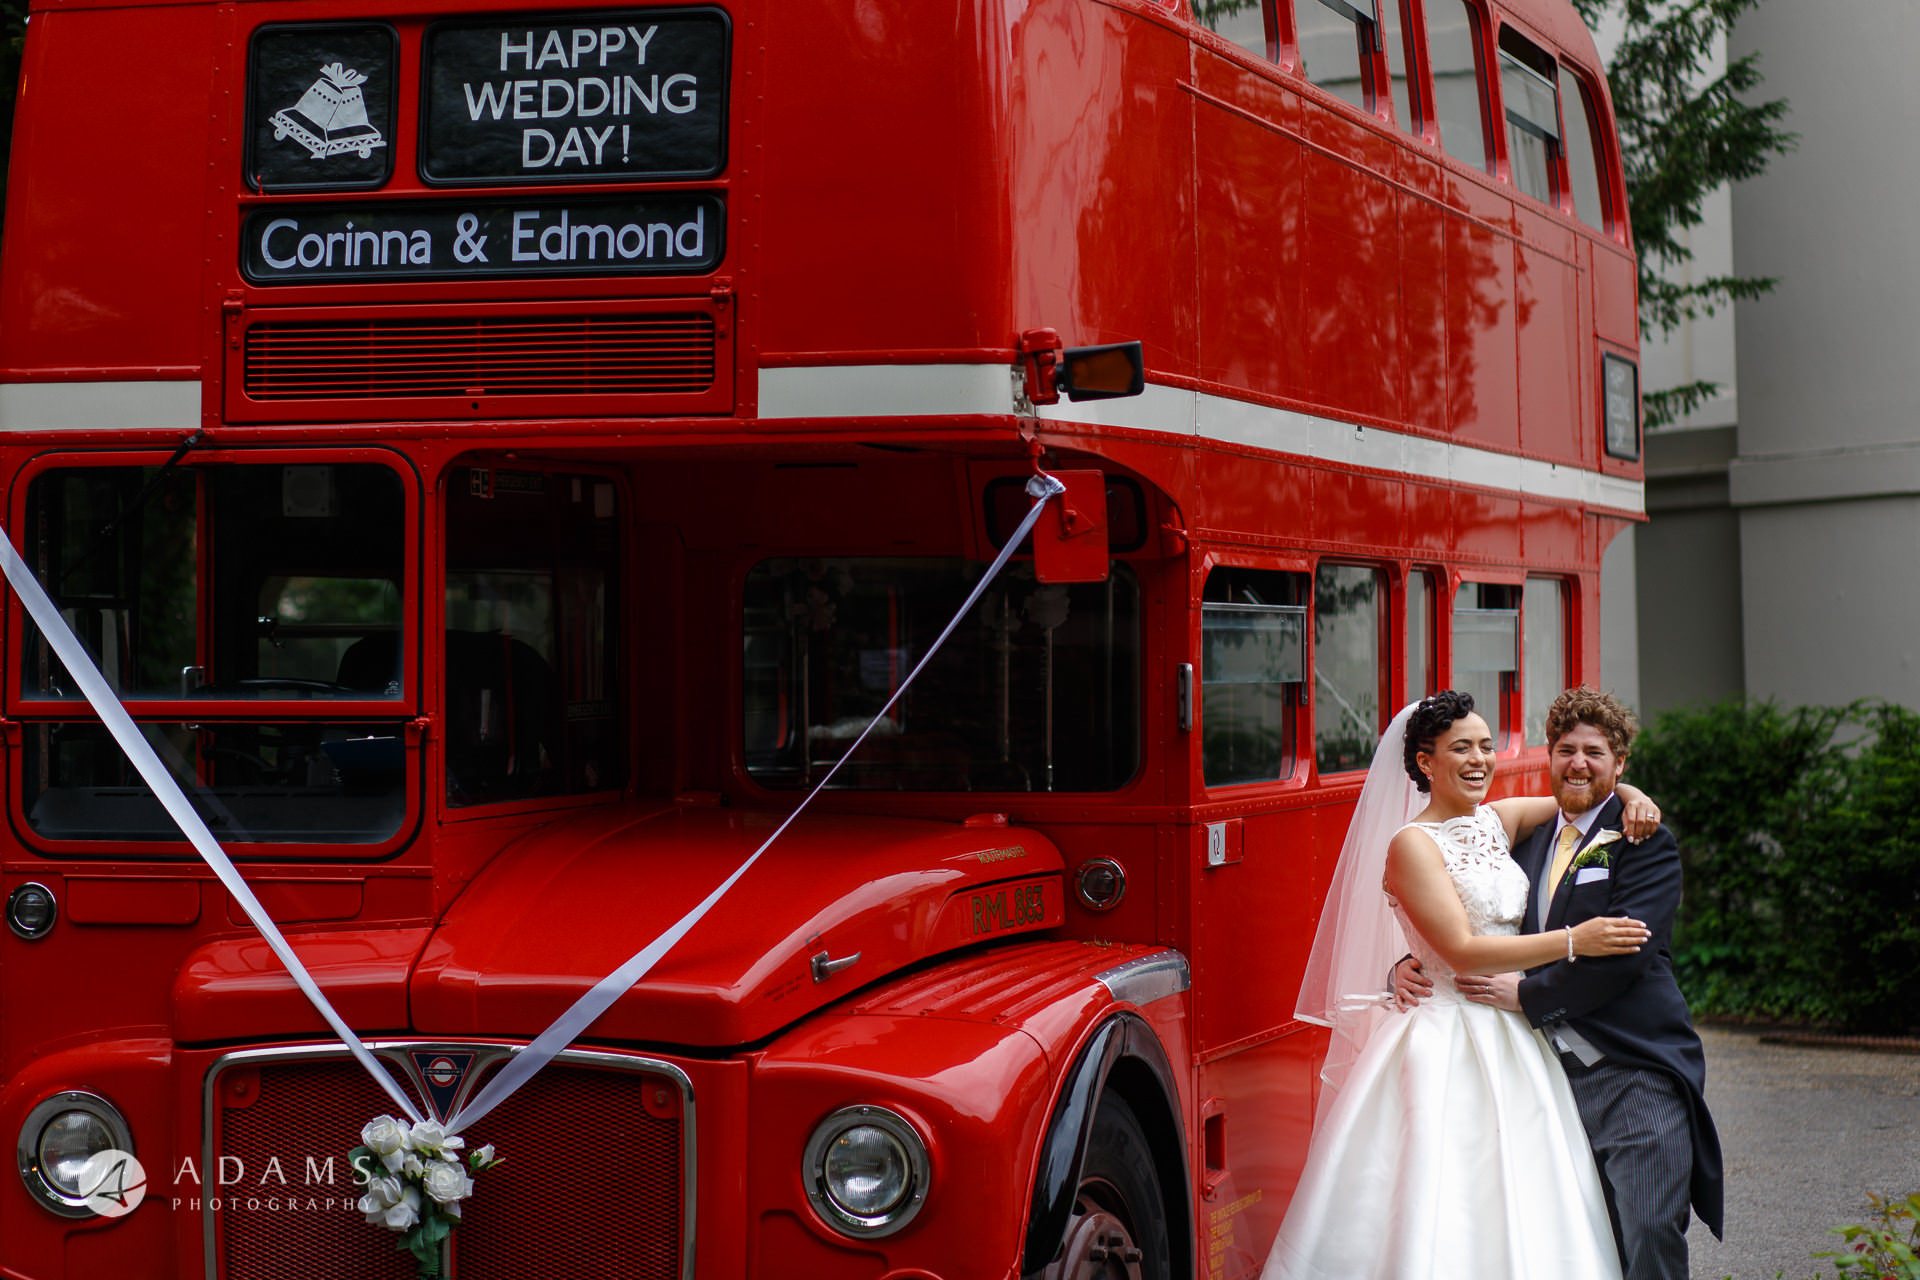 Morden HallWedding the married couple is posing by the red route-master bus in front of Morden Hall